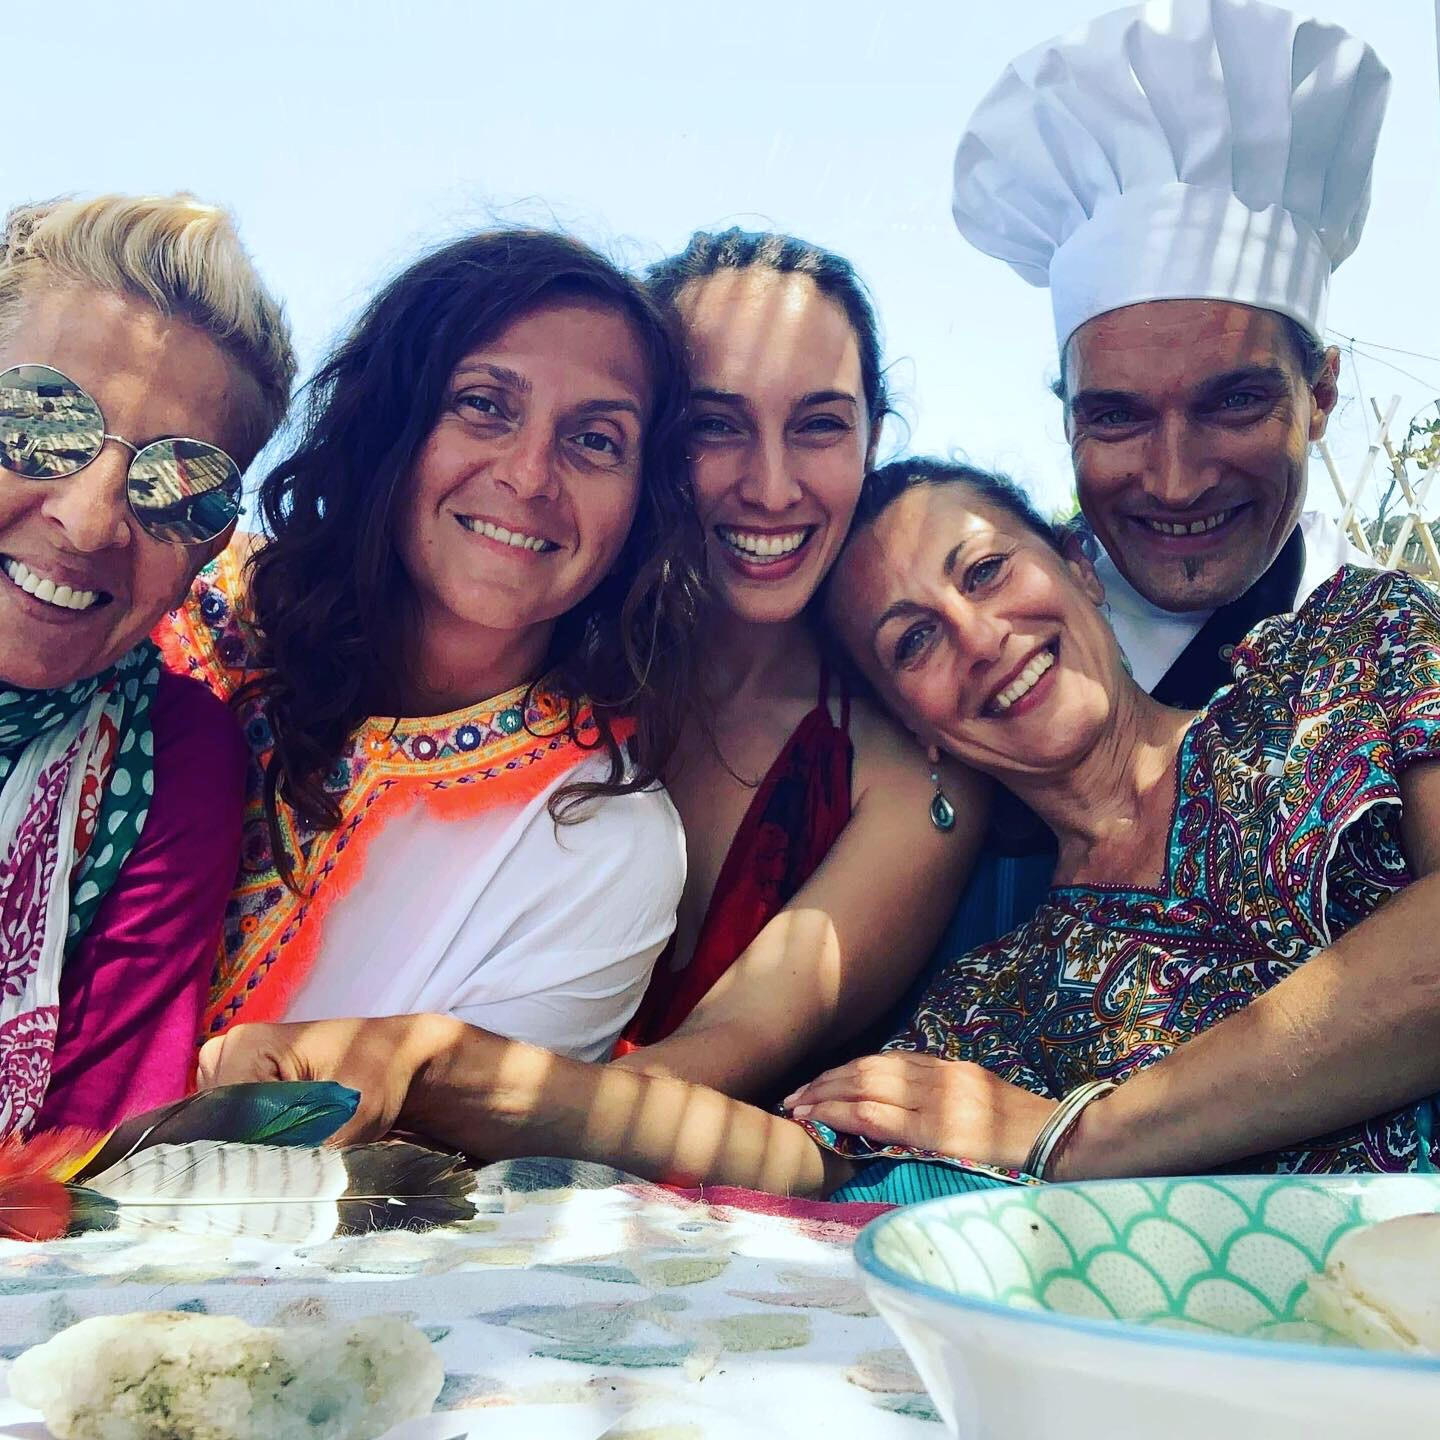 Esco Essence our inhouse chef The Happiness Retreat Emerge As One Kythera island Greece